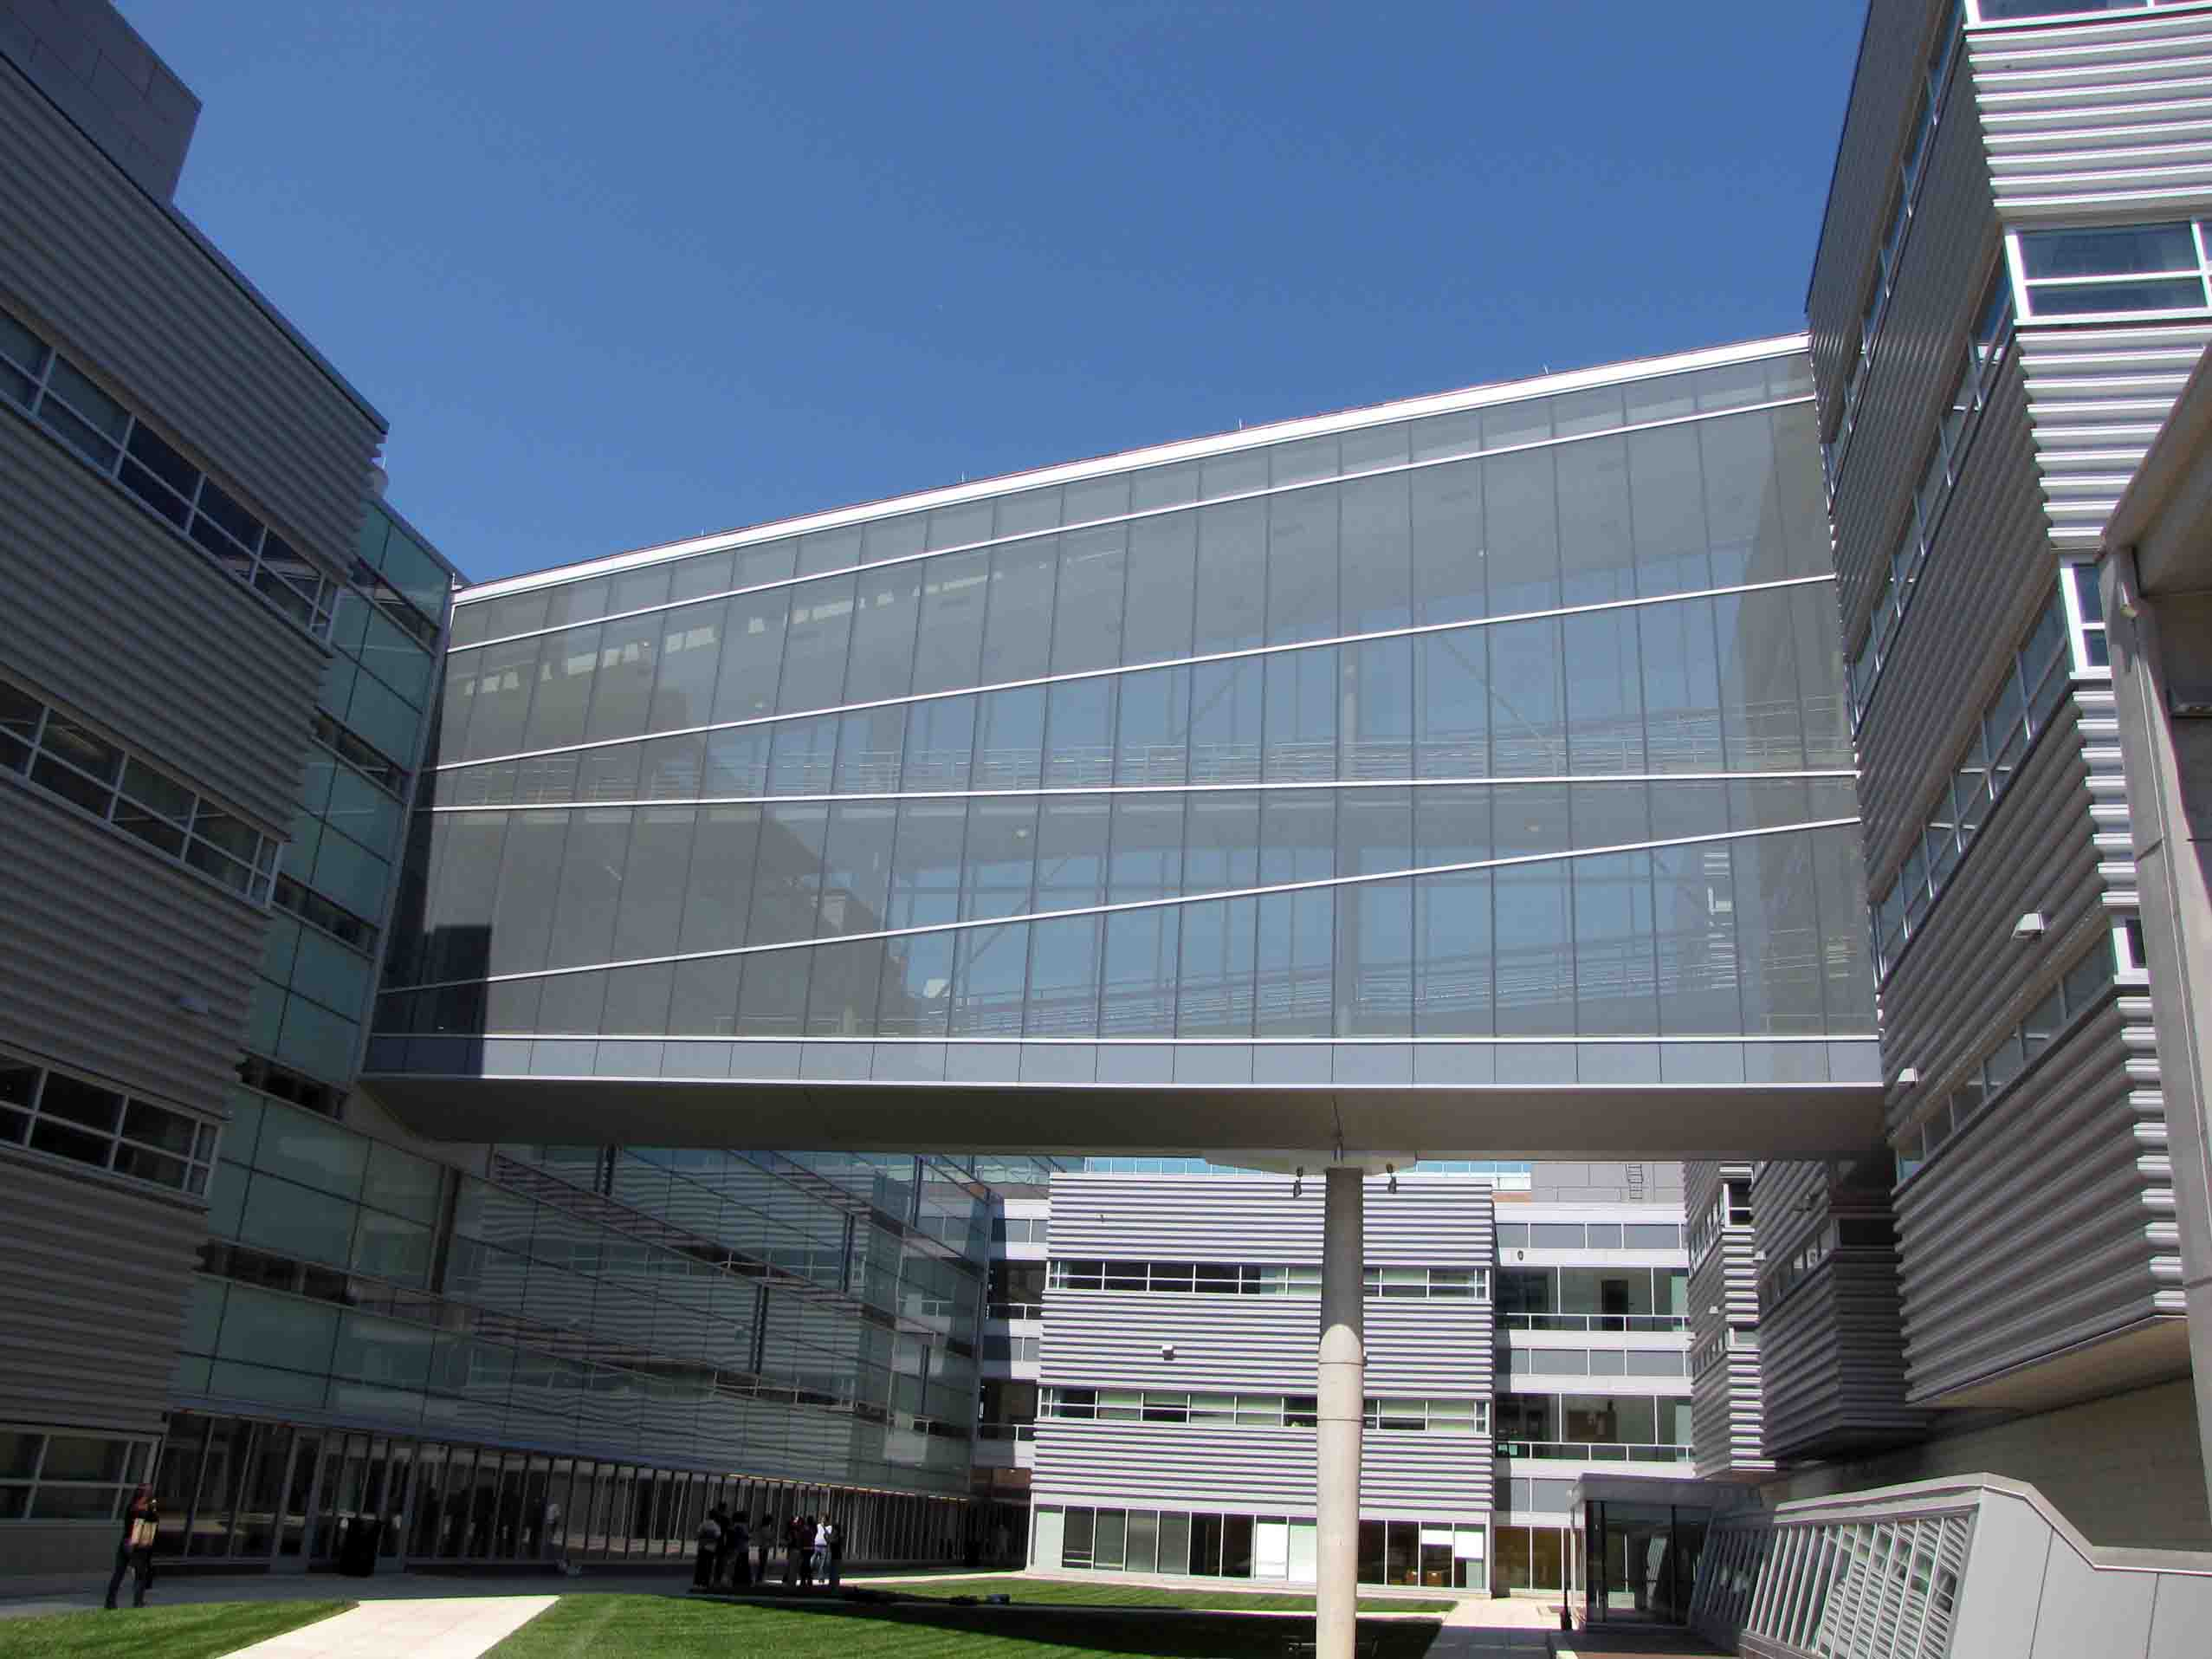 mechanical engineering building at the ohio state university in